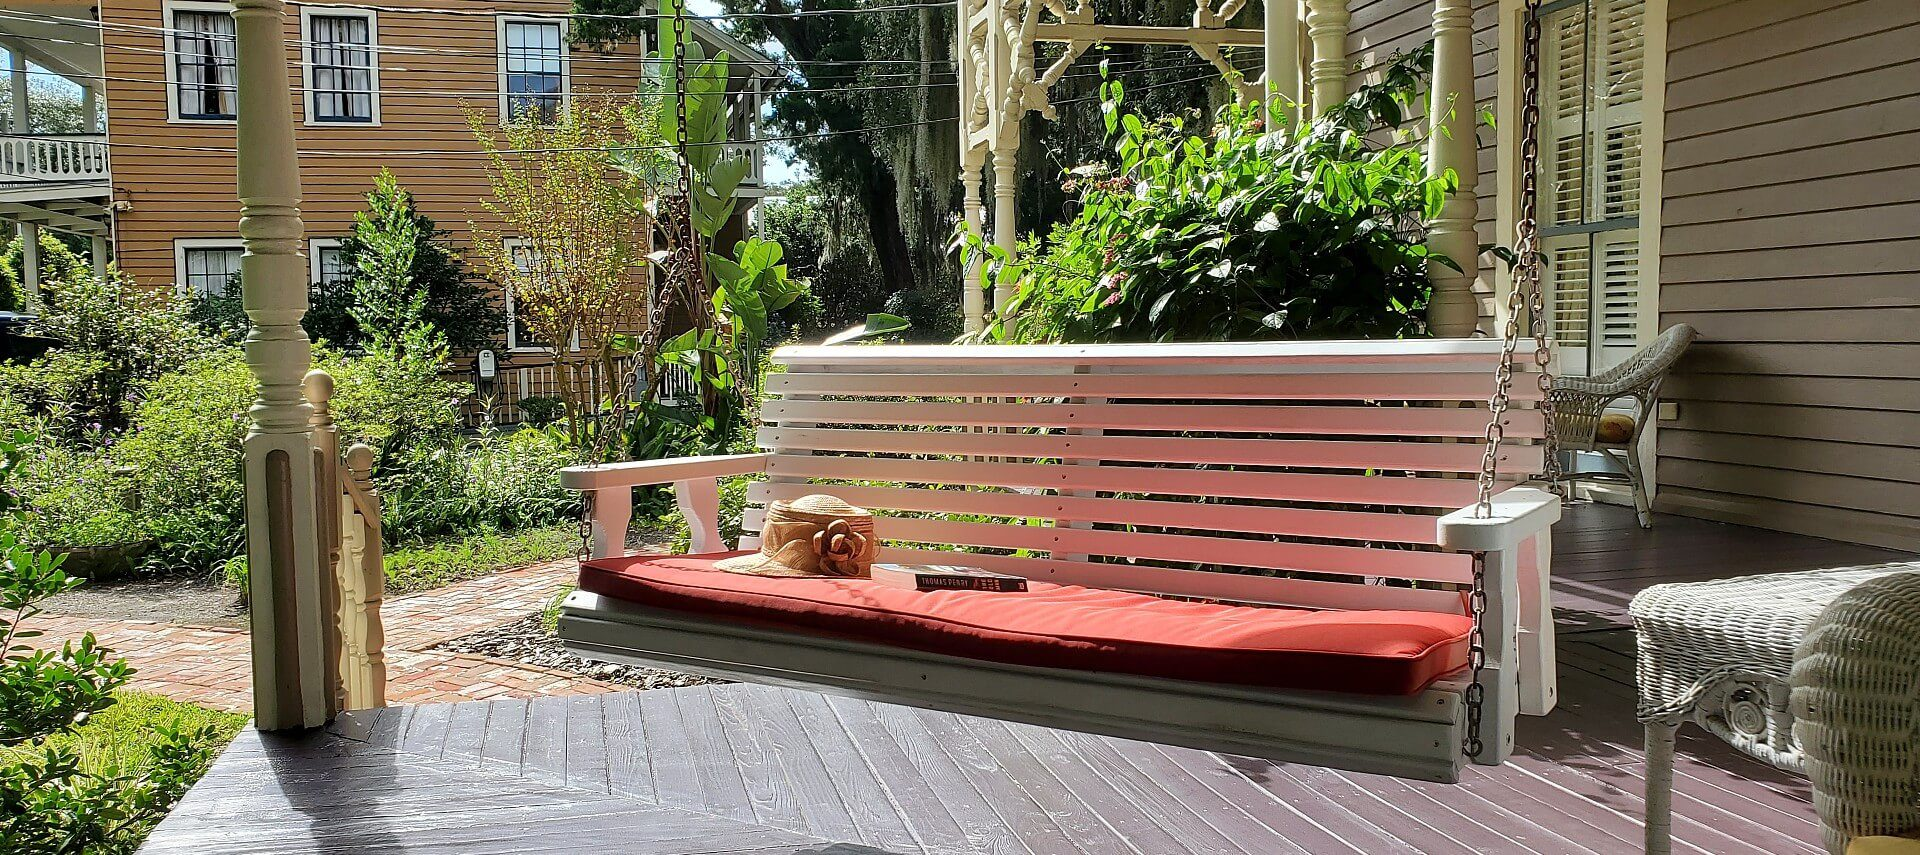 Wooden swinging bench with red cushion at the corner of a large patio with lush greens all around